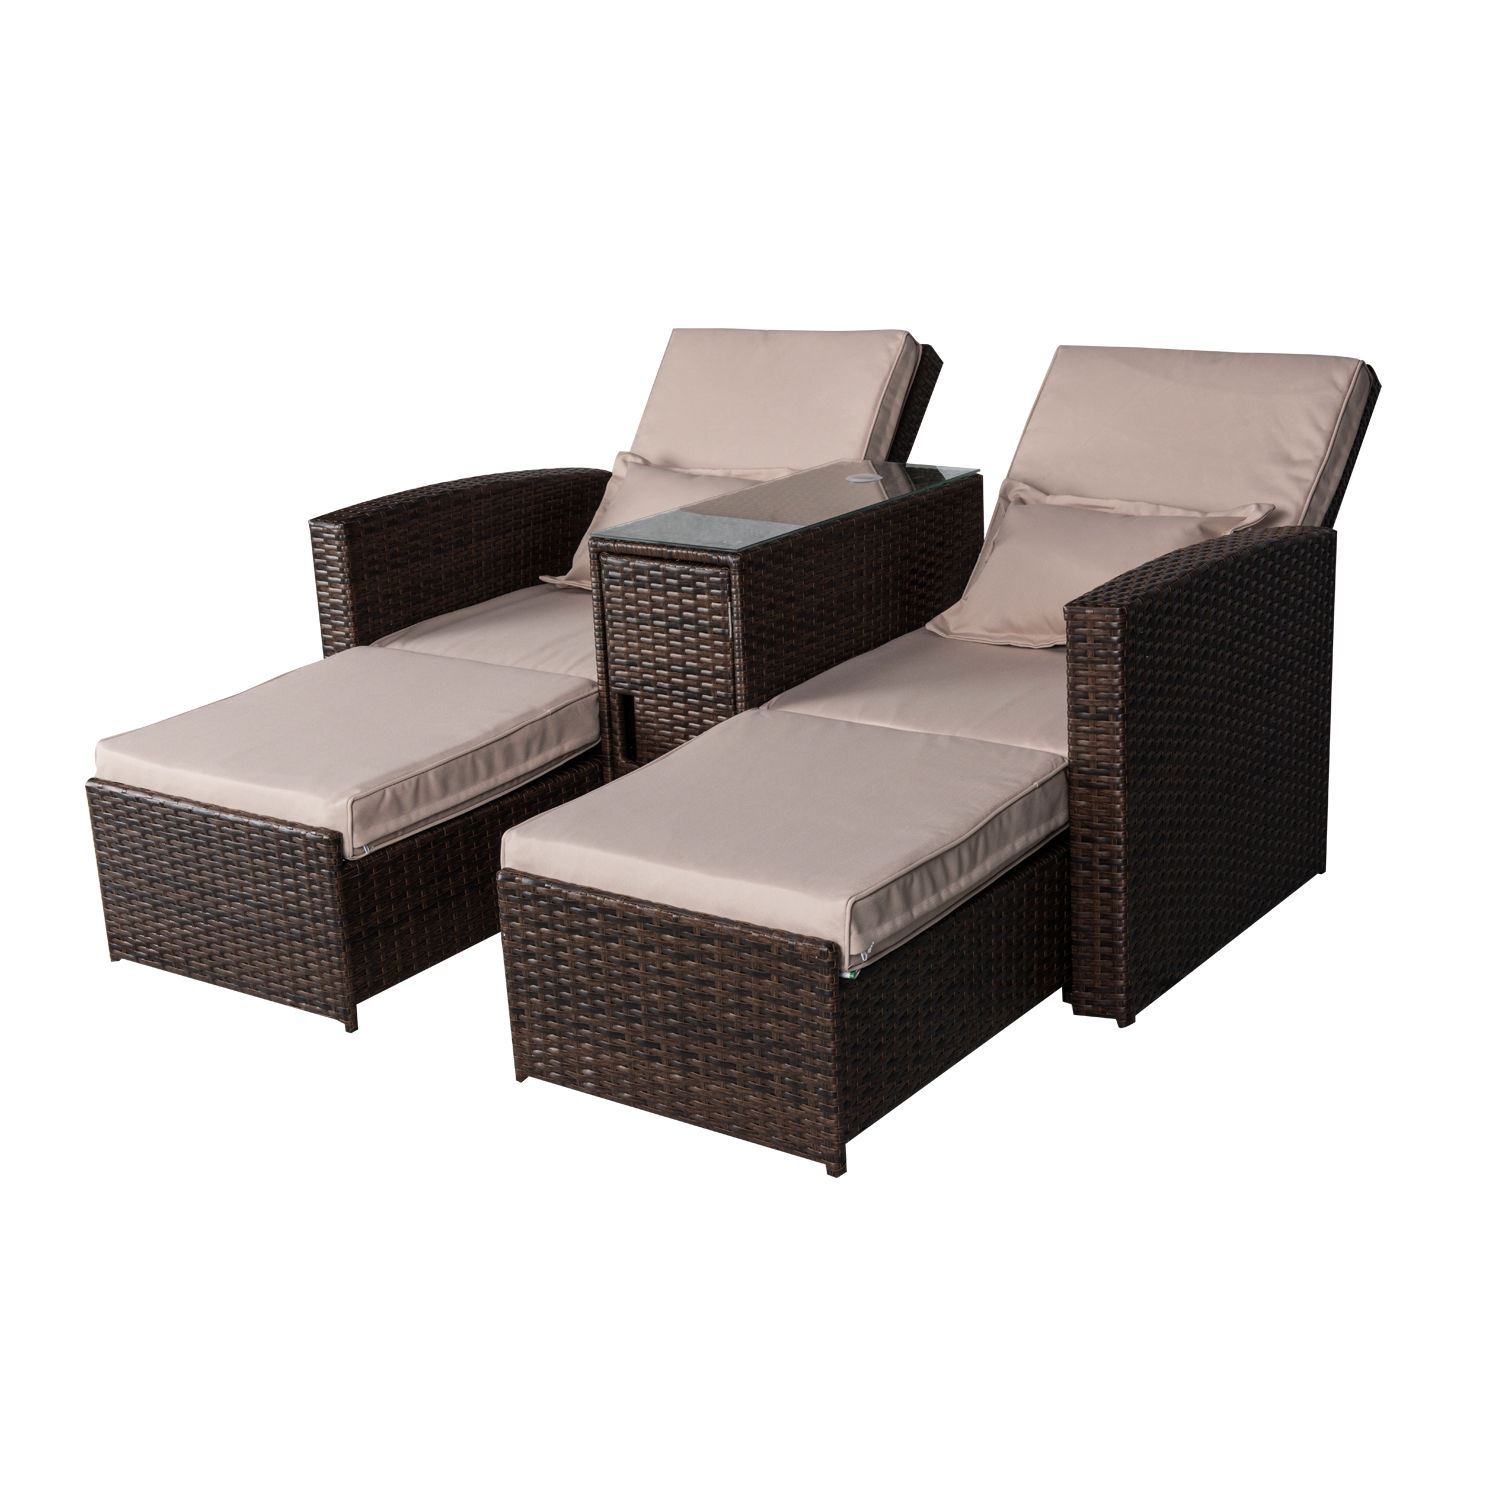 Outsunny 3-Piece Outdoor Rattan Wicker Chaise Lounge Furniture Set by Aosom